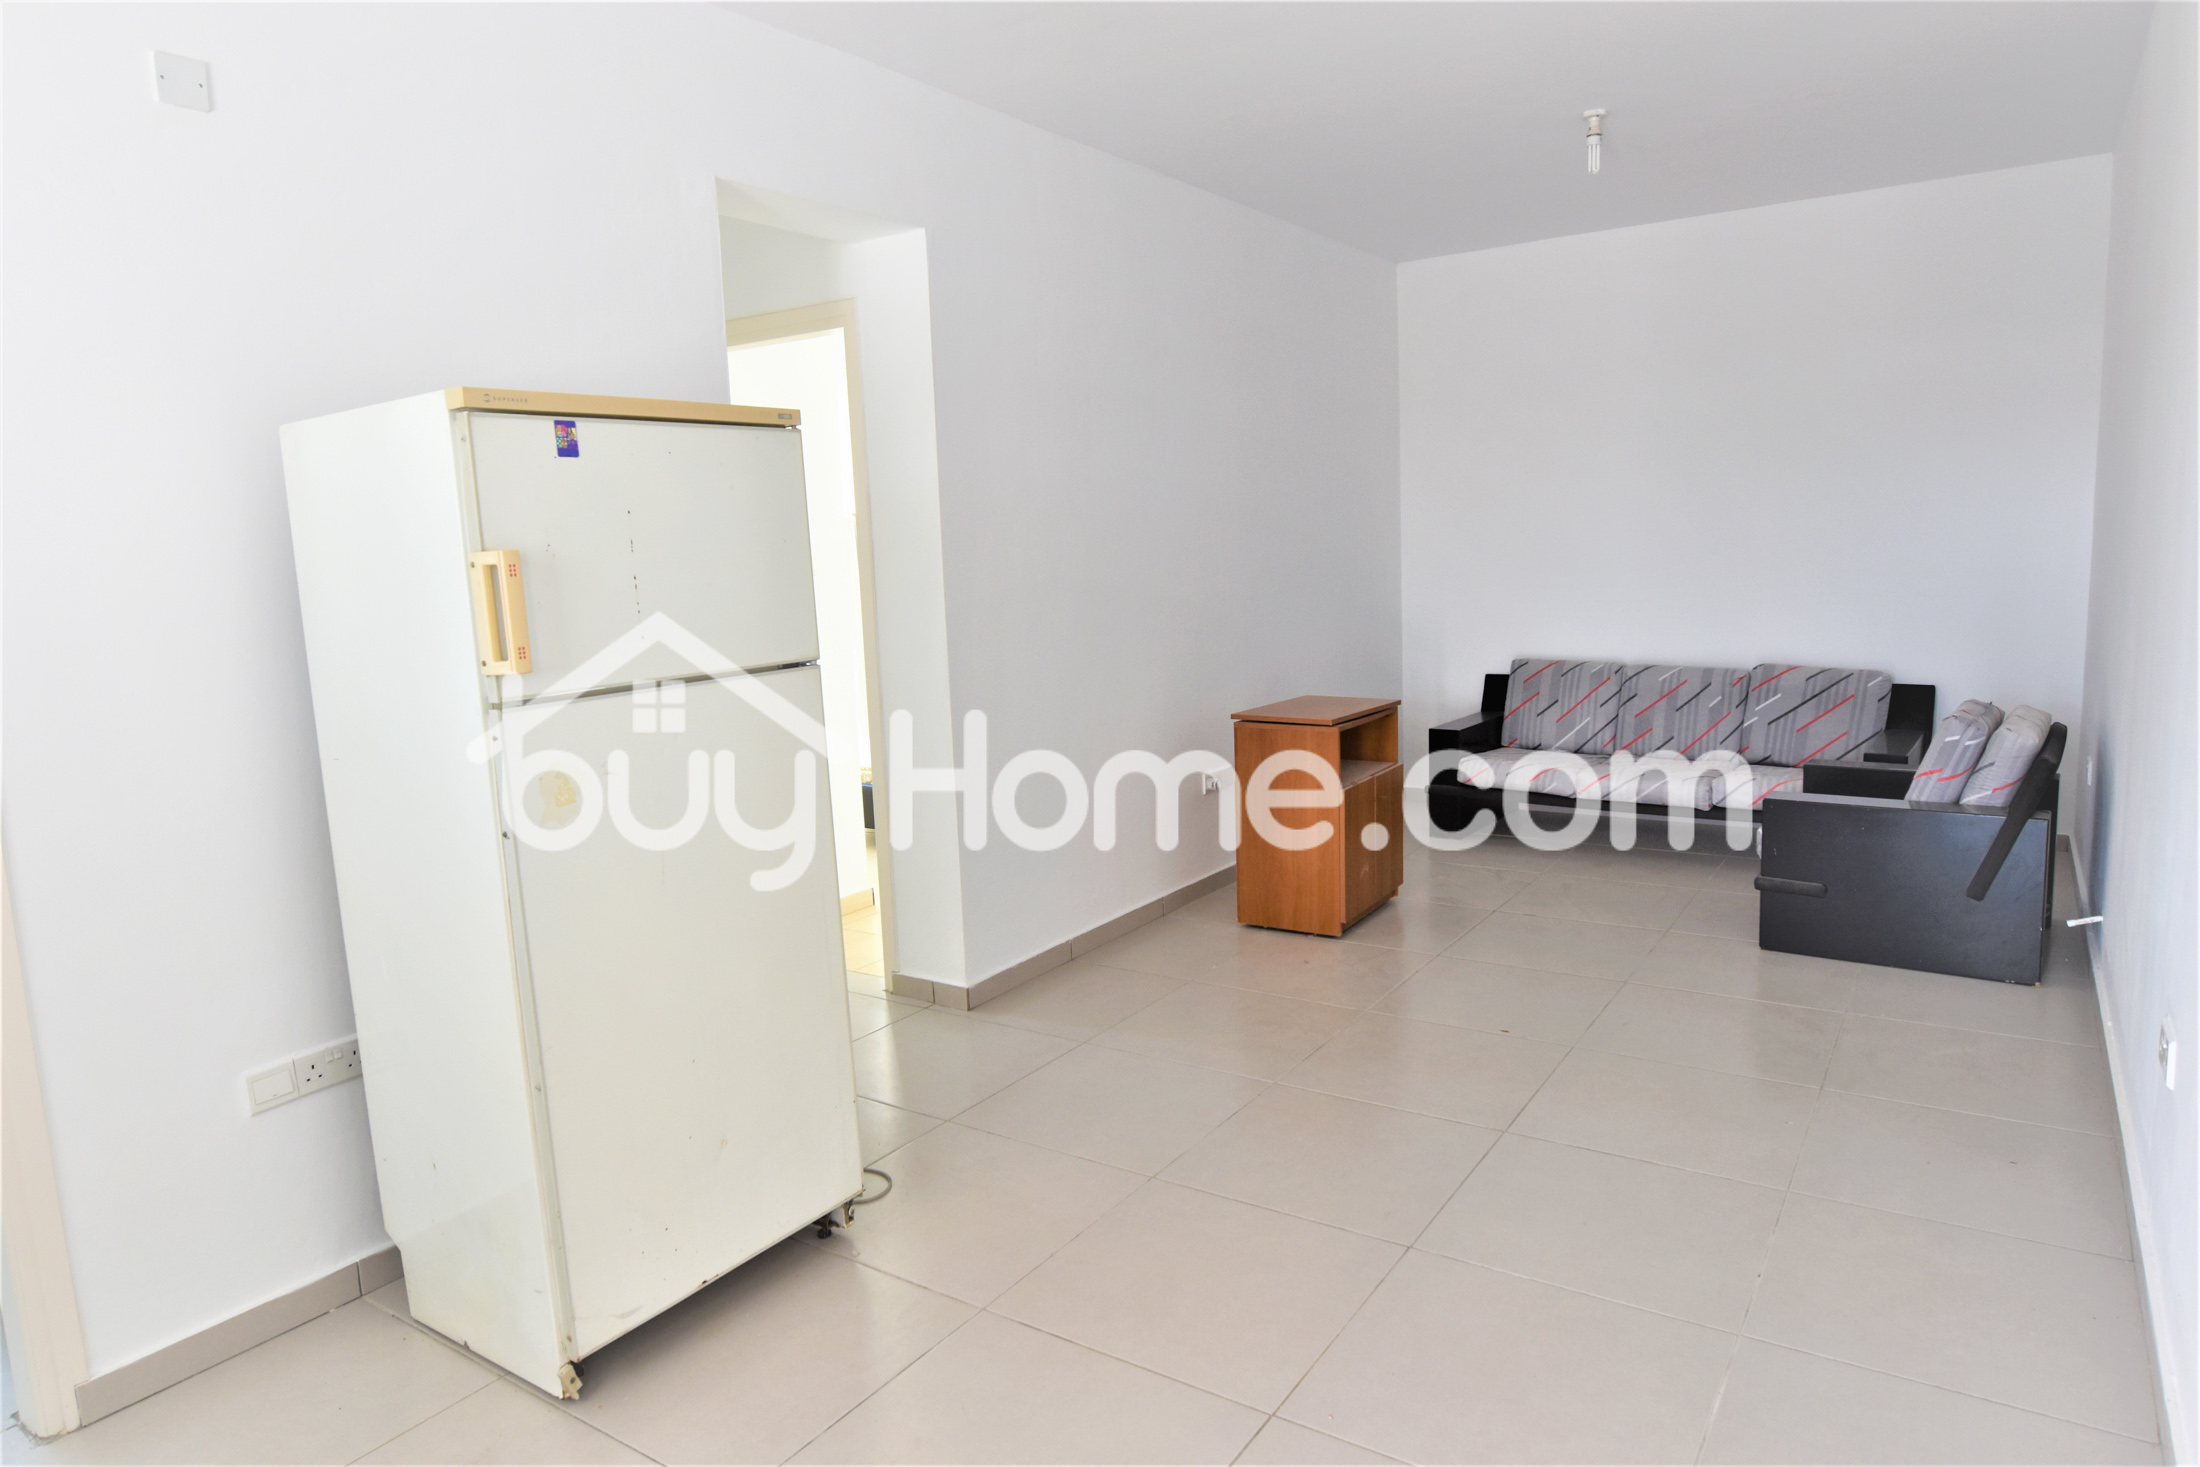 2 Bed Ground Floor Apartment   BuyHome